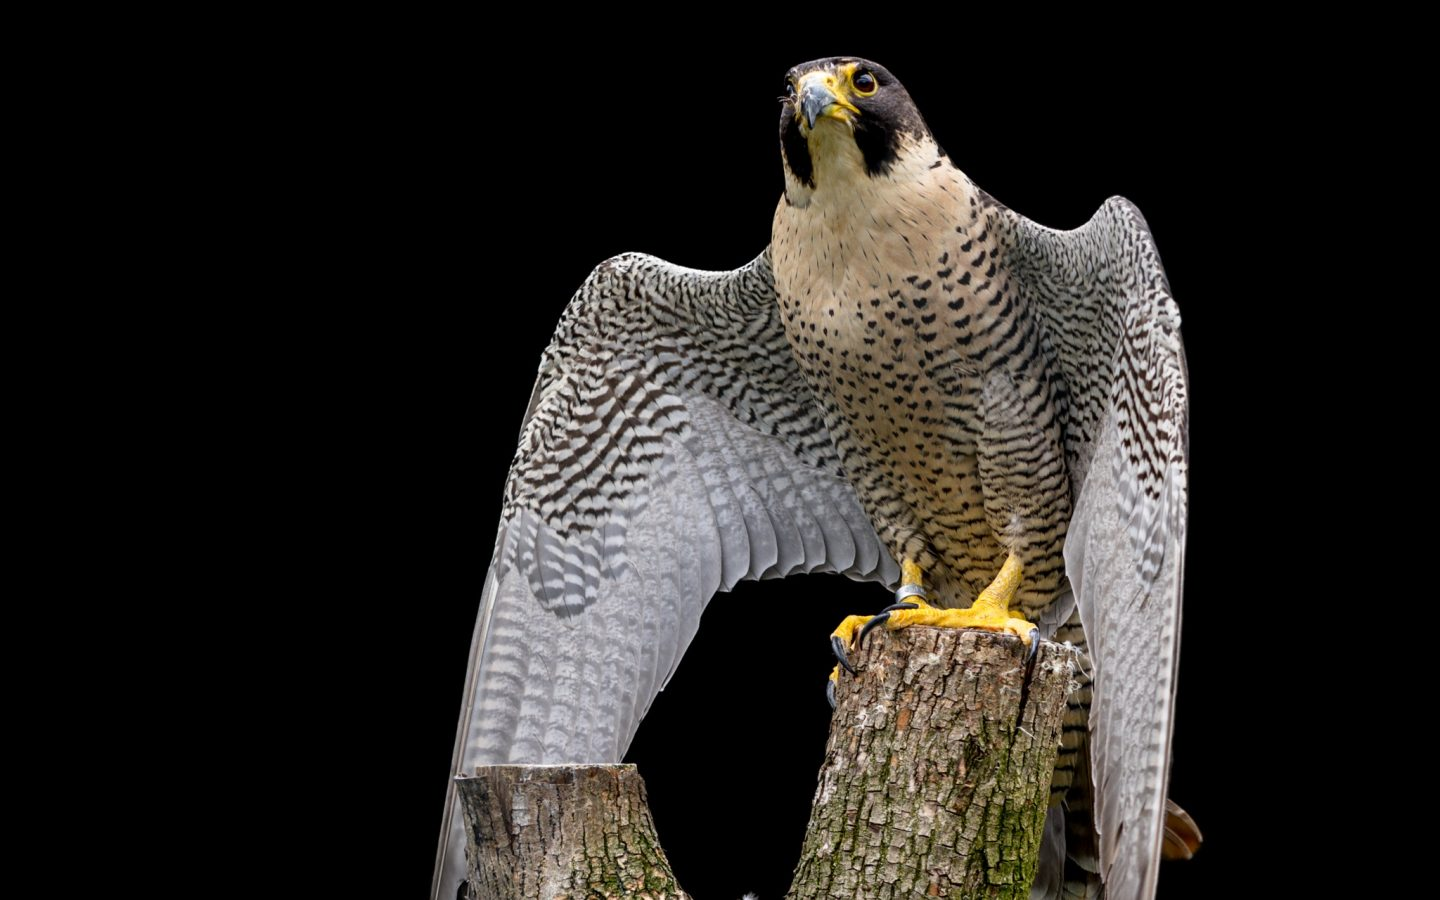 Motivational Wallpapers Hd Peregrine Falcon Hd Wallpaper